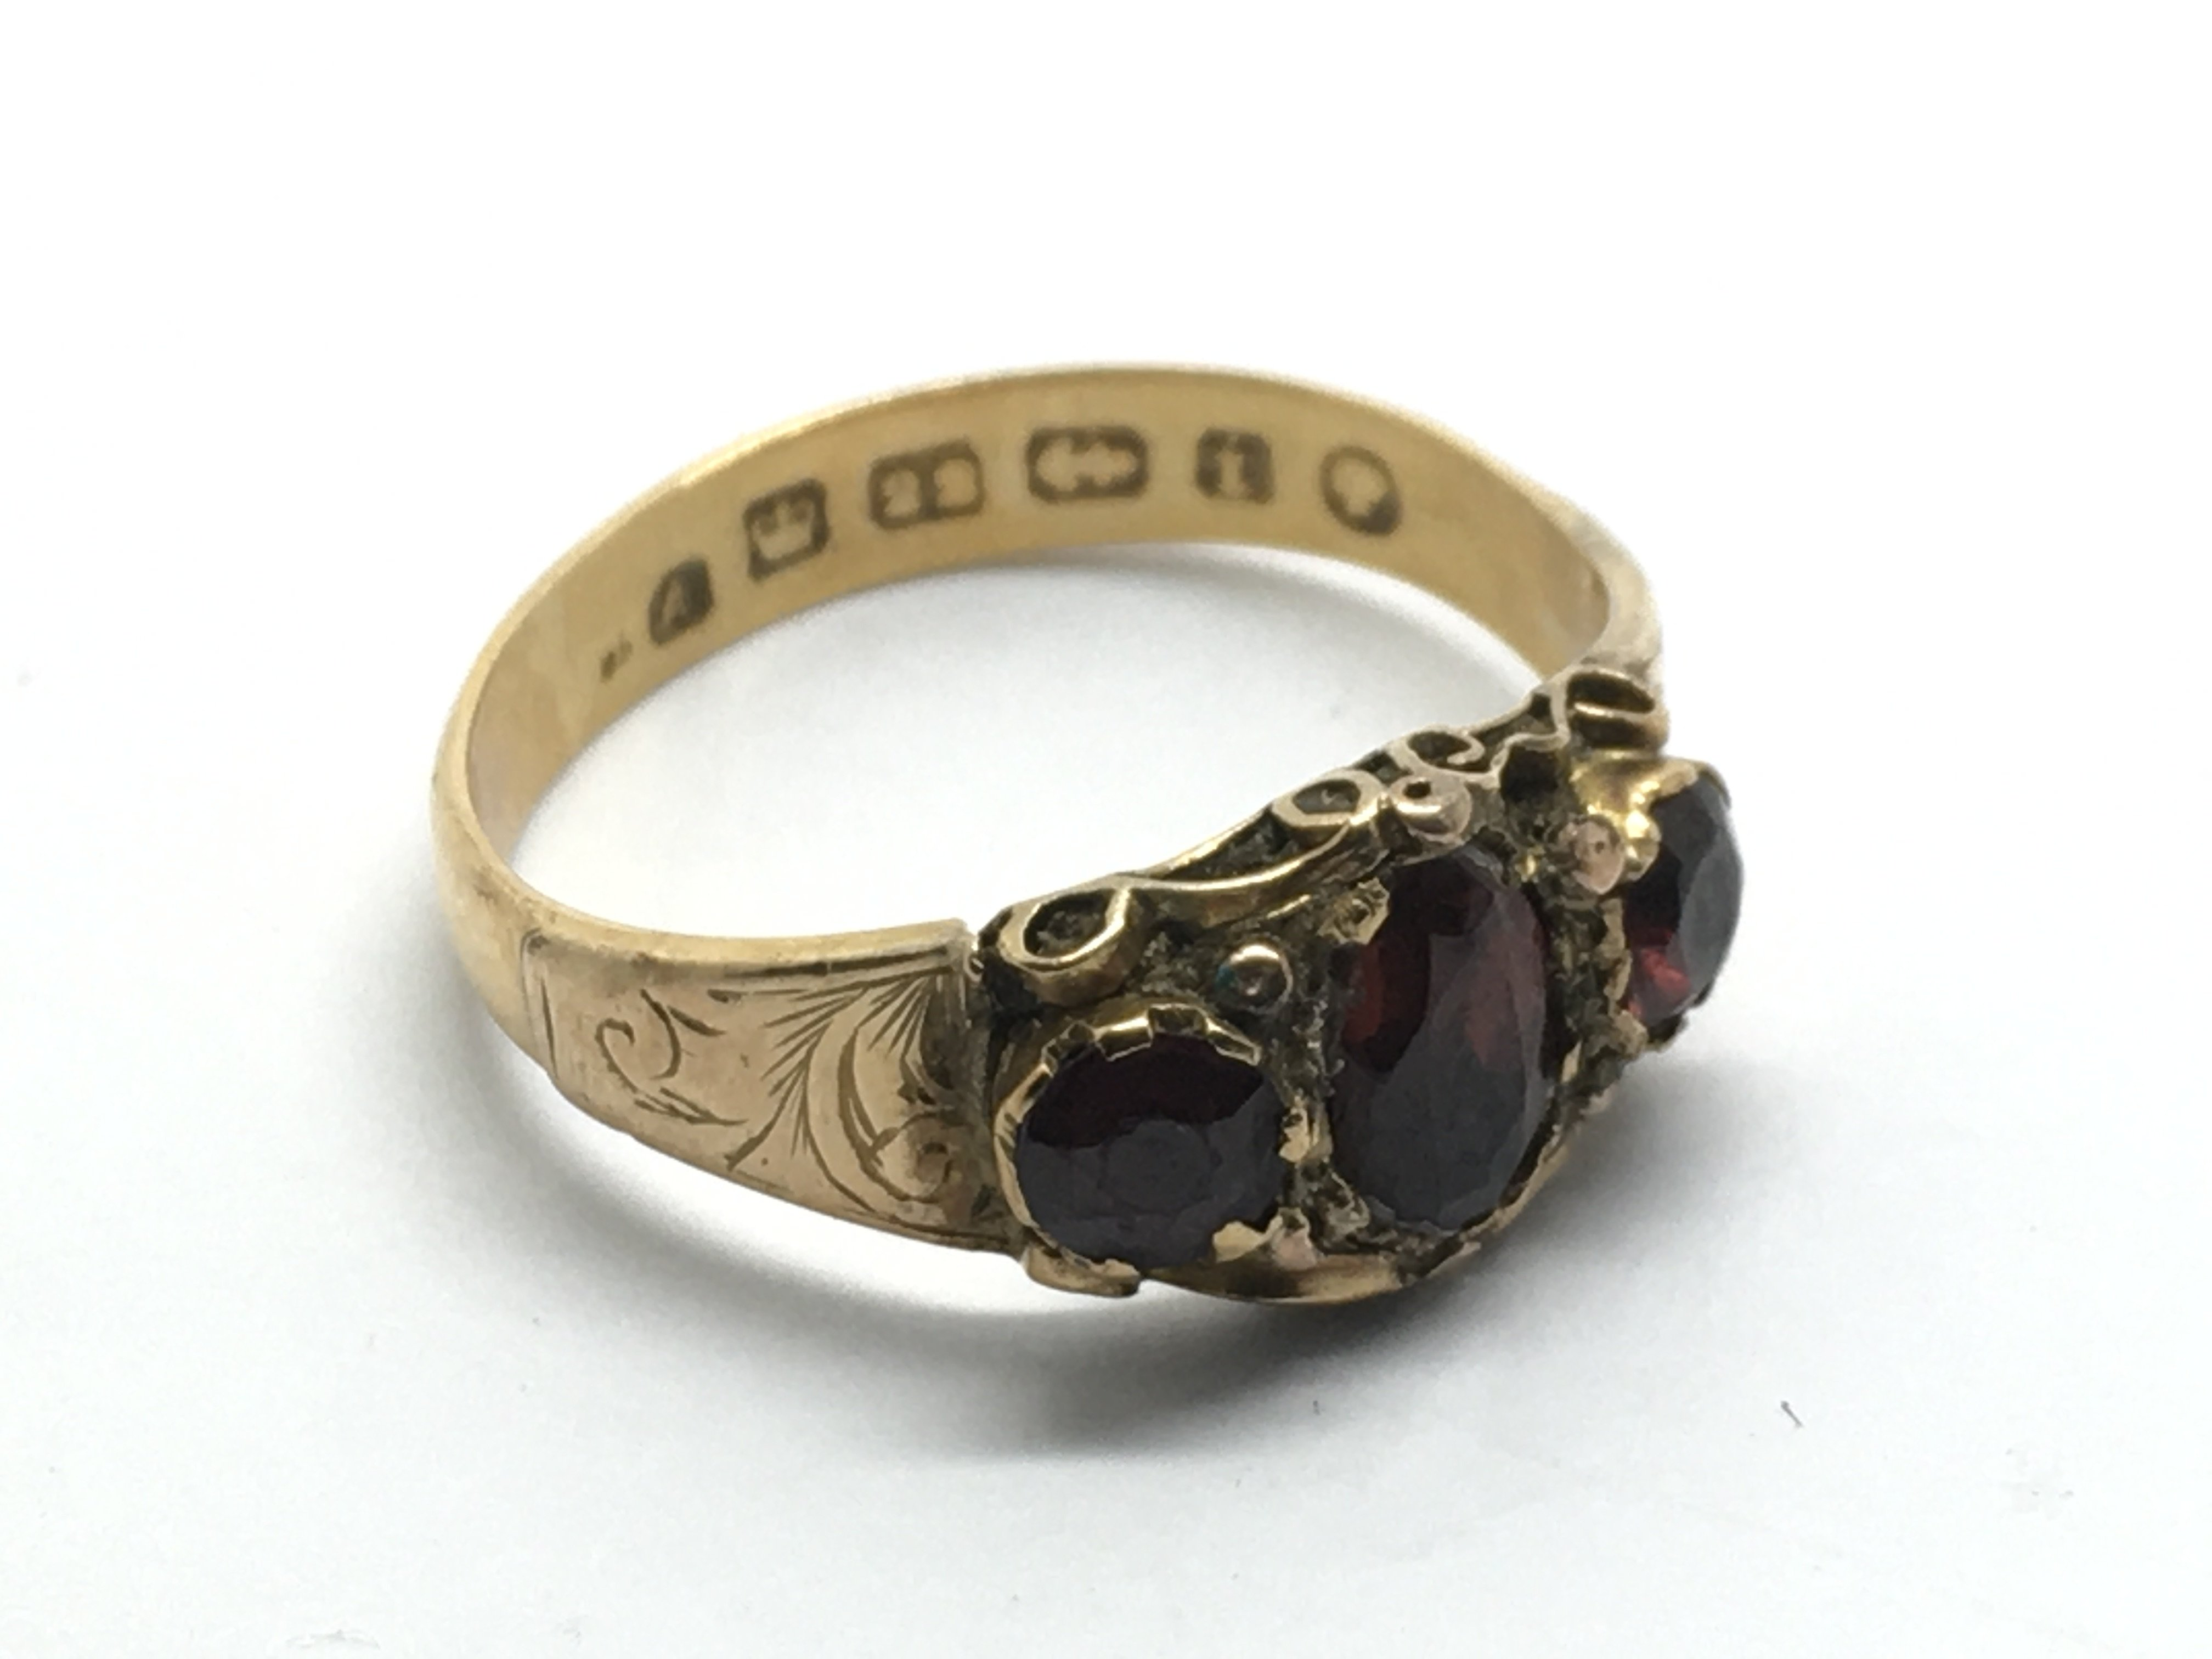 An antique 22ct gold ring inset with garnets, appr